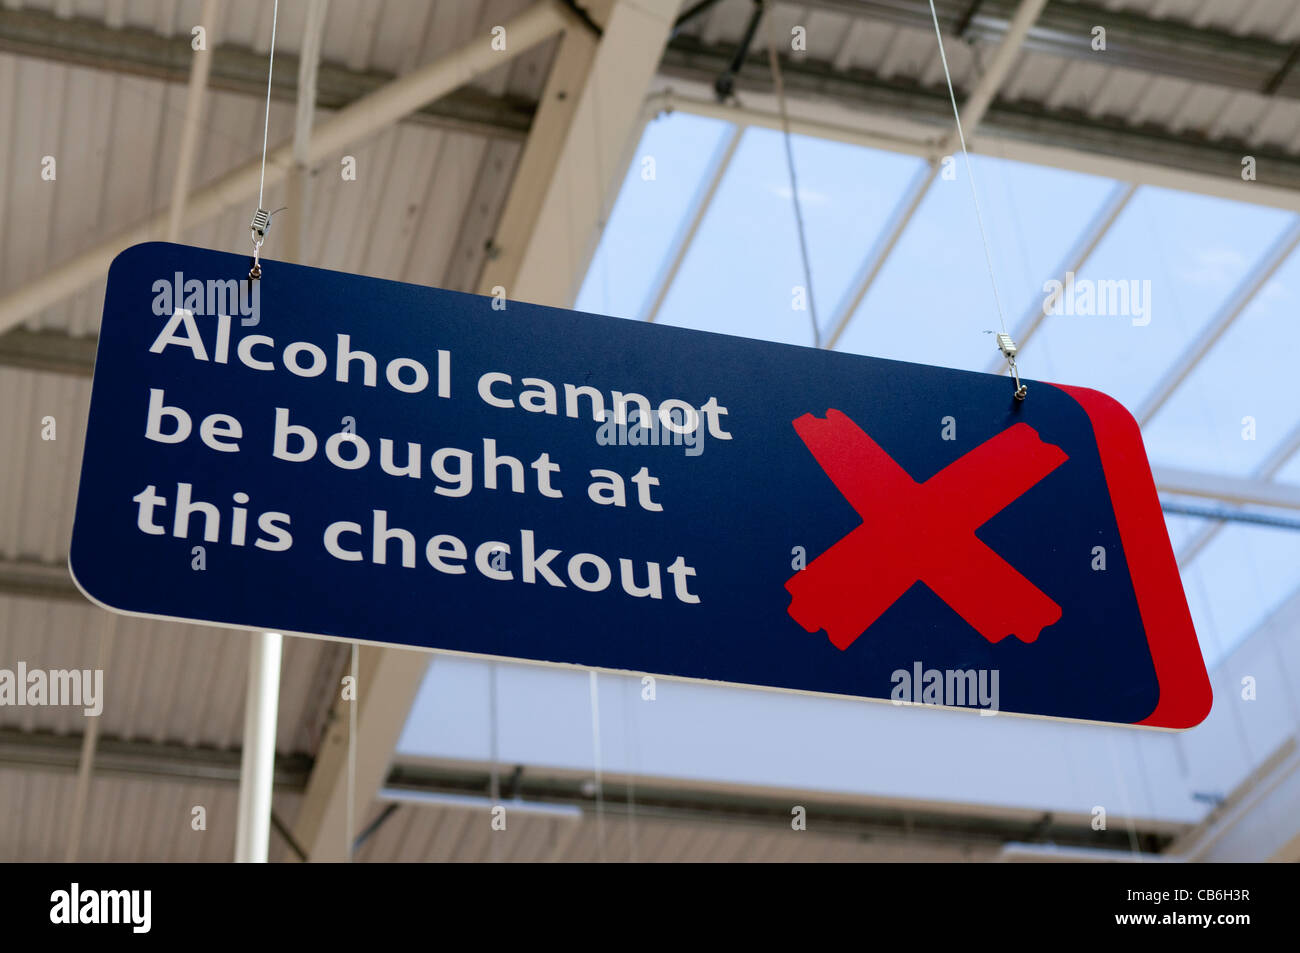 Sign advising customers that alcohol cannot be purchased at this checkout (Northern Ireland Licencing laws) - Stock Image